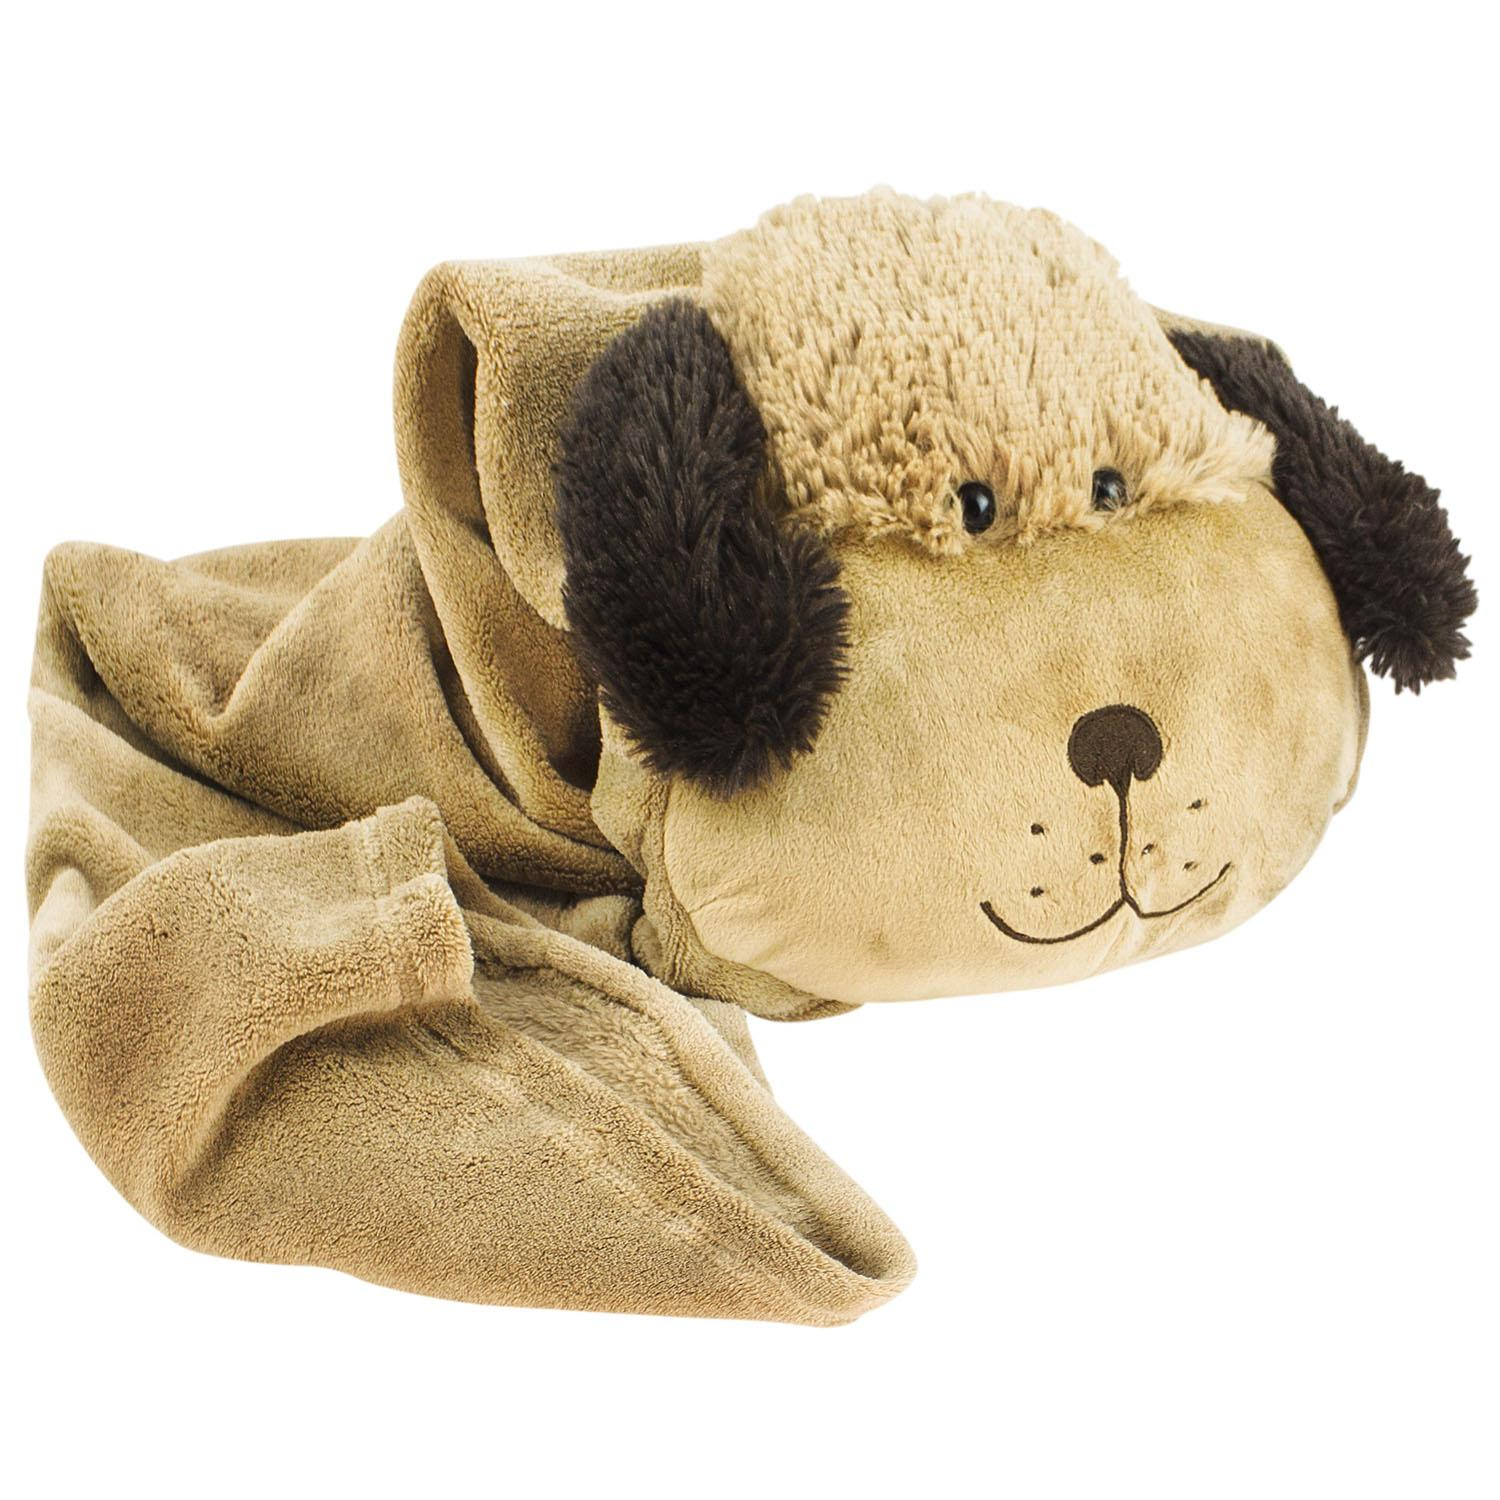 Animal Pillow Blanket : Official Pillow Pet Puppy Dog Rollup Throw Childrens/Kids Cushion/Pillow/Blanket eBay